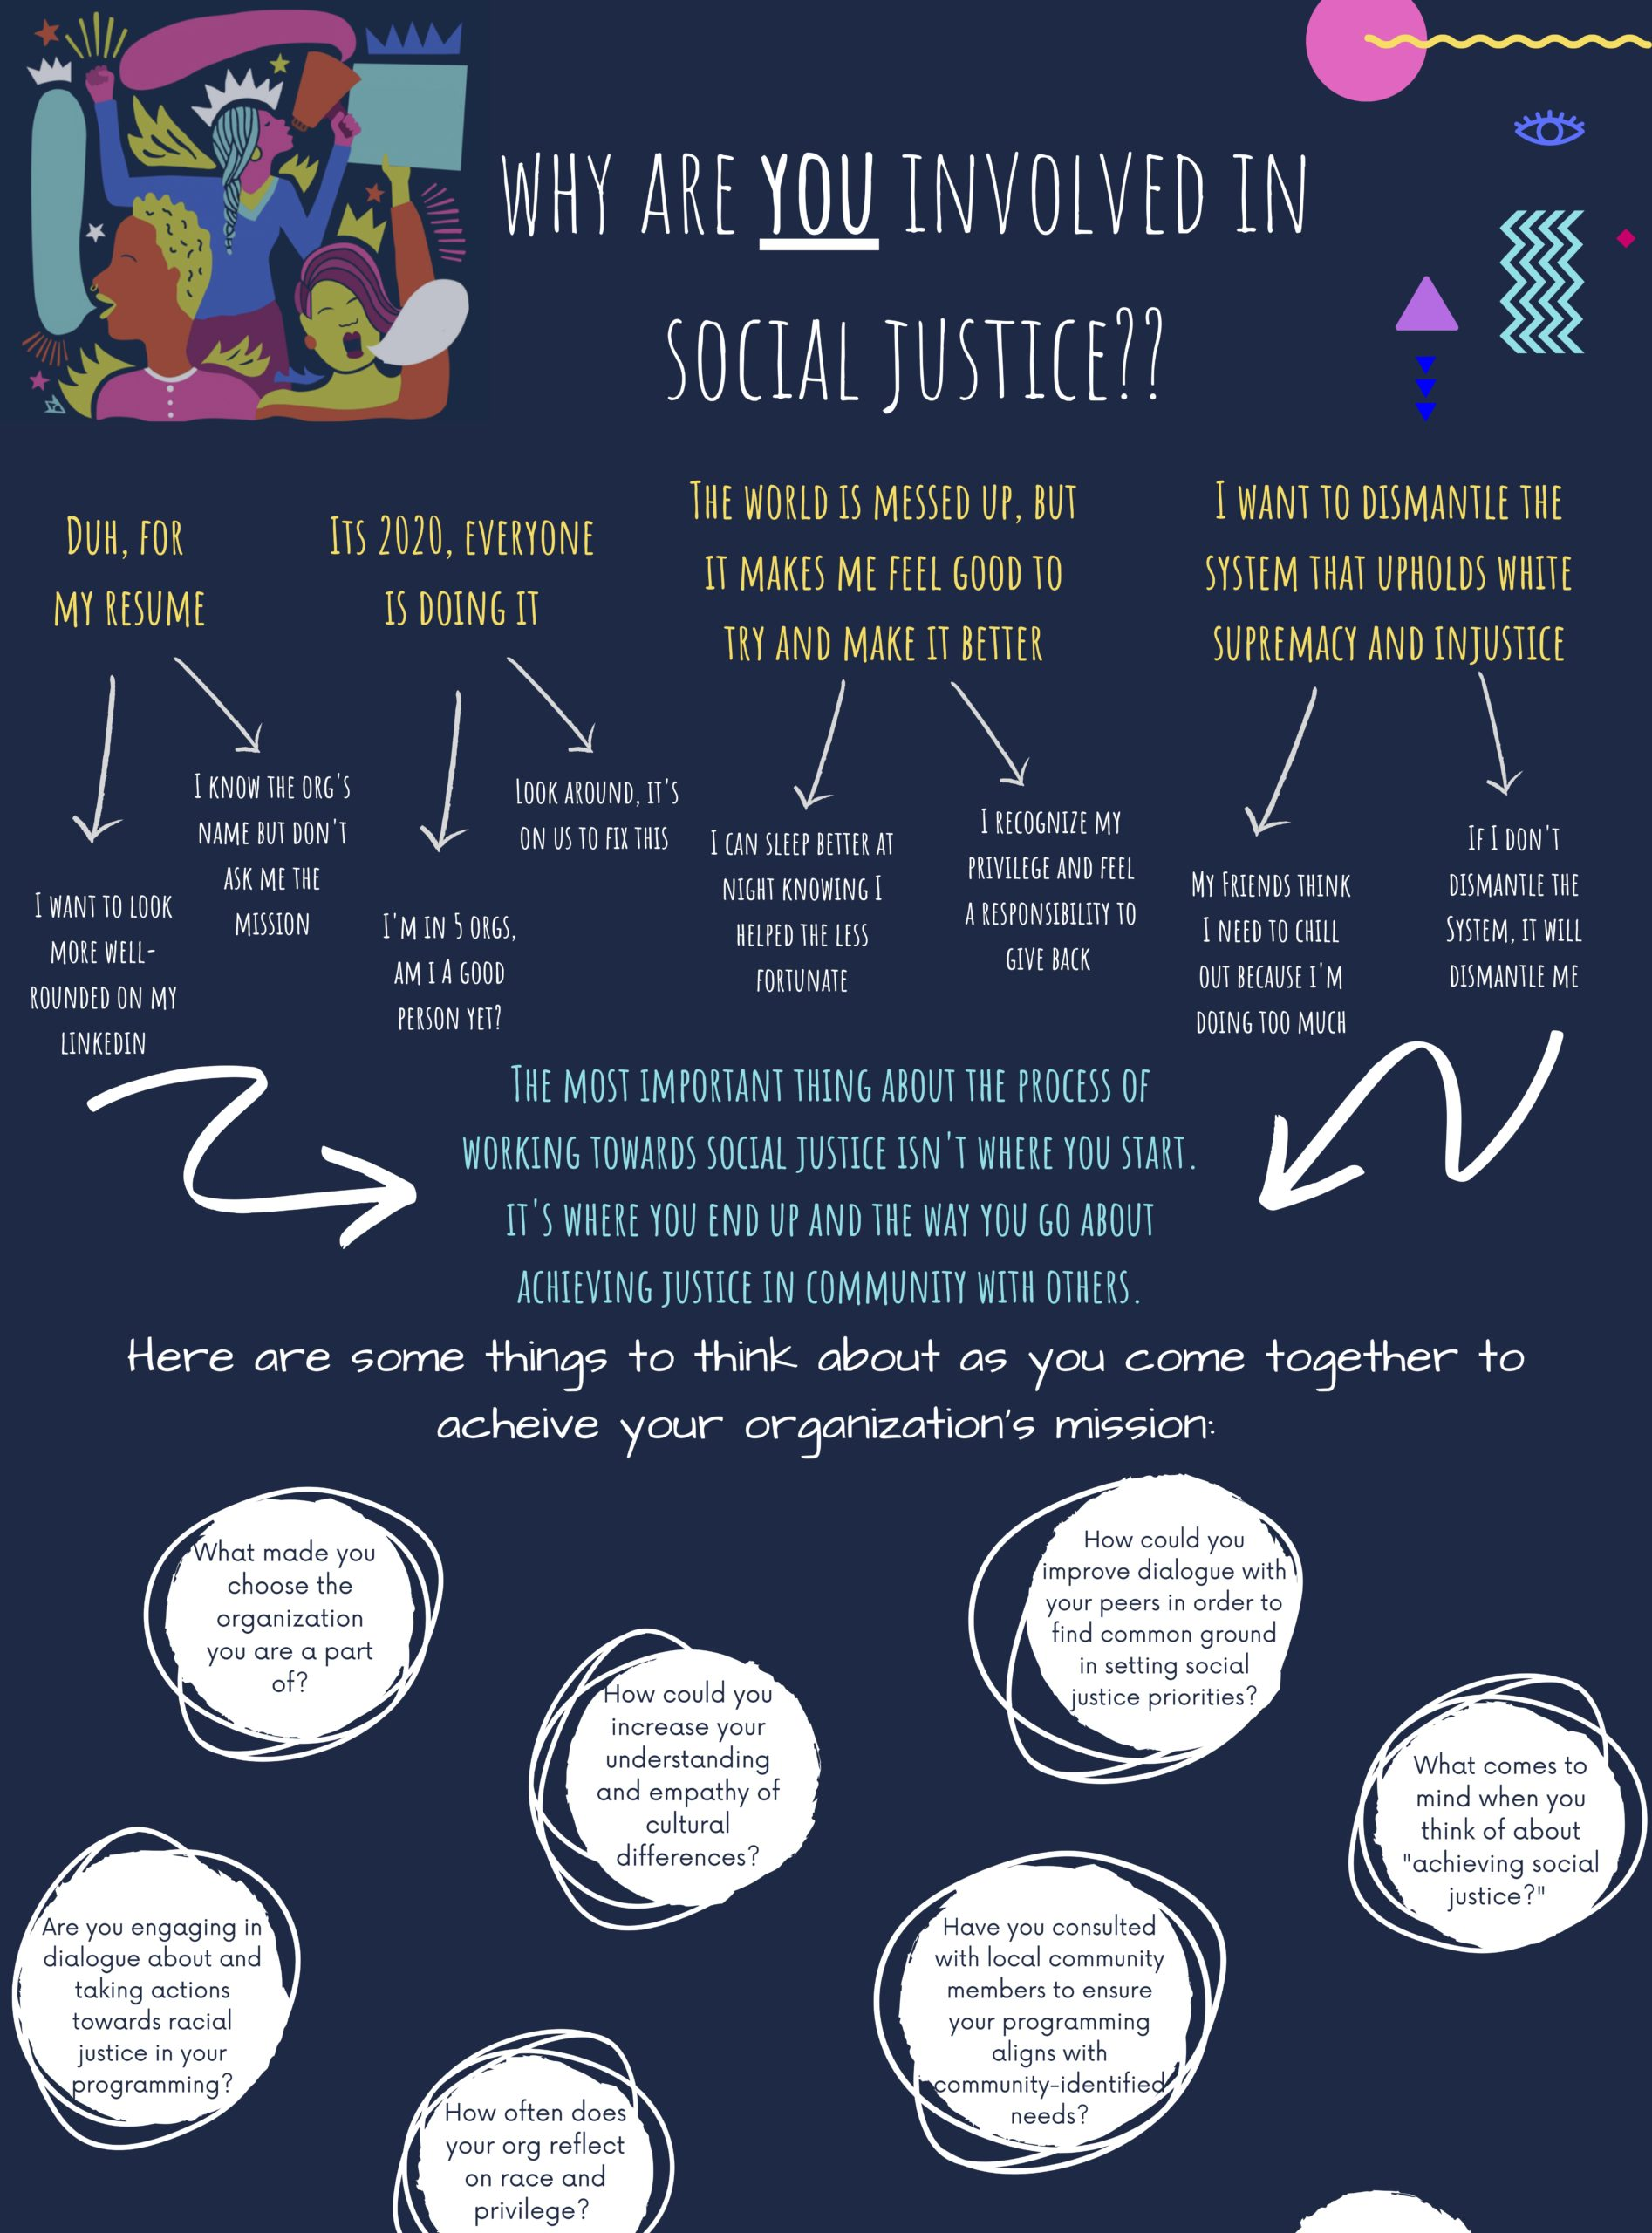 center for social justice research teaching service georgetown university